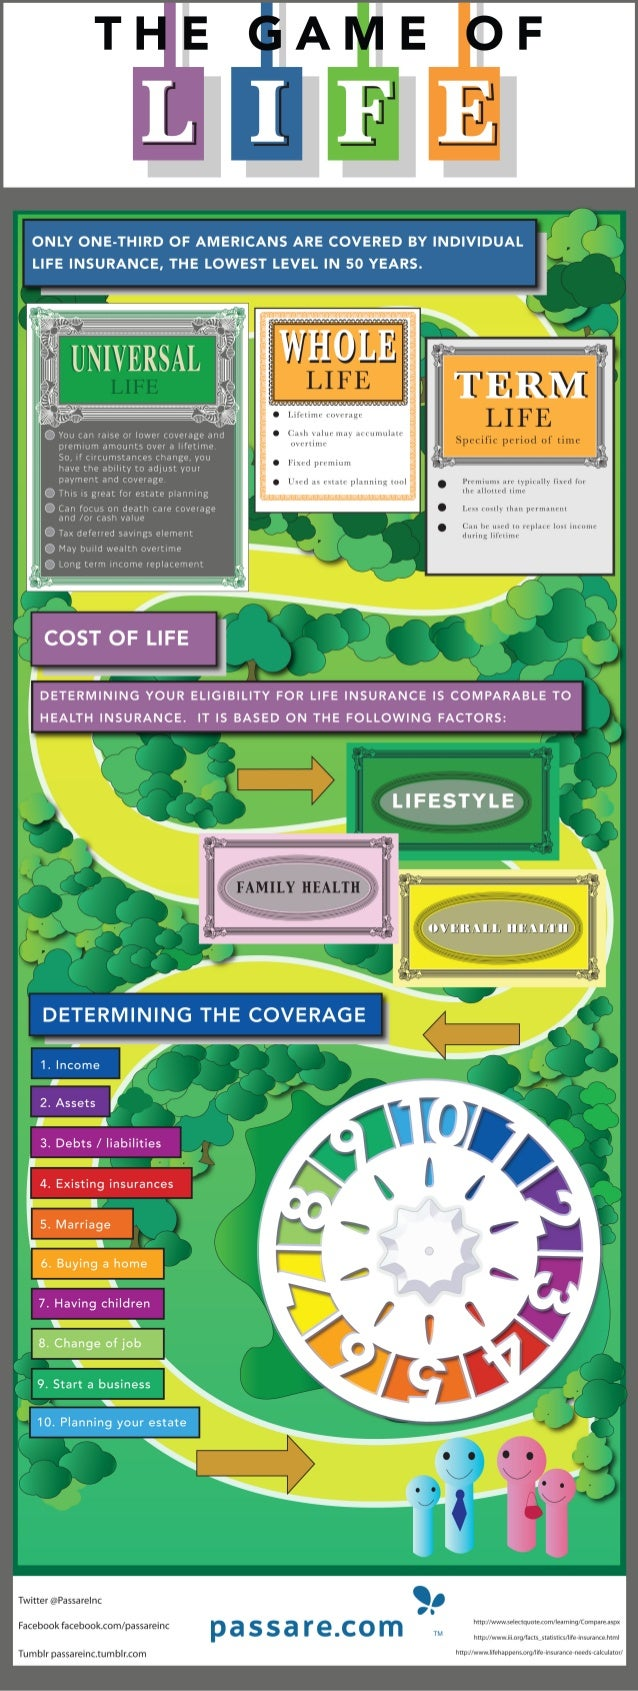 The Game Of Life - Infographic